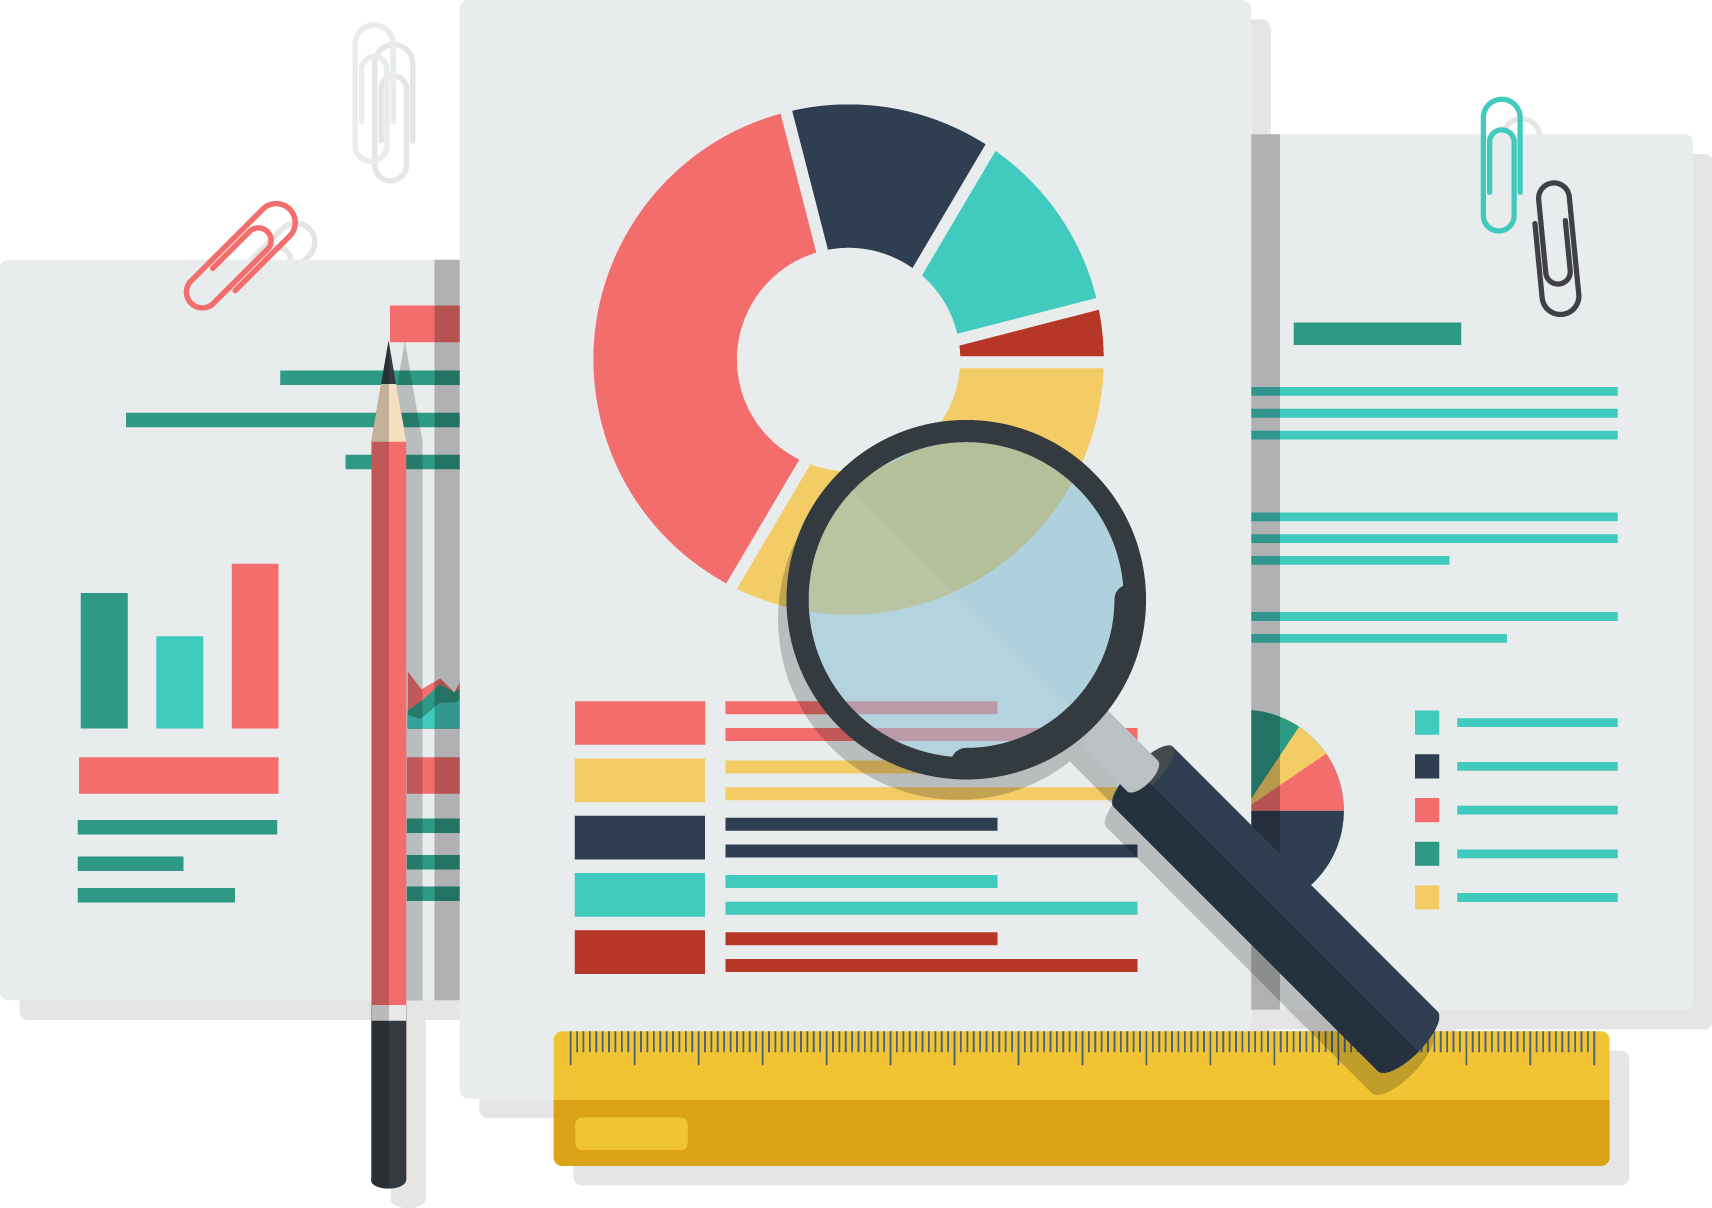 Transparency in business reporting analyst